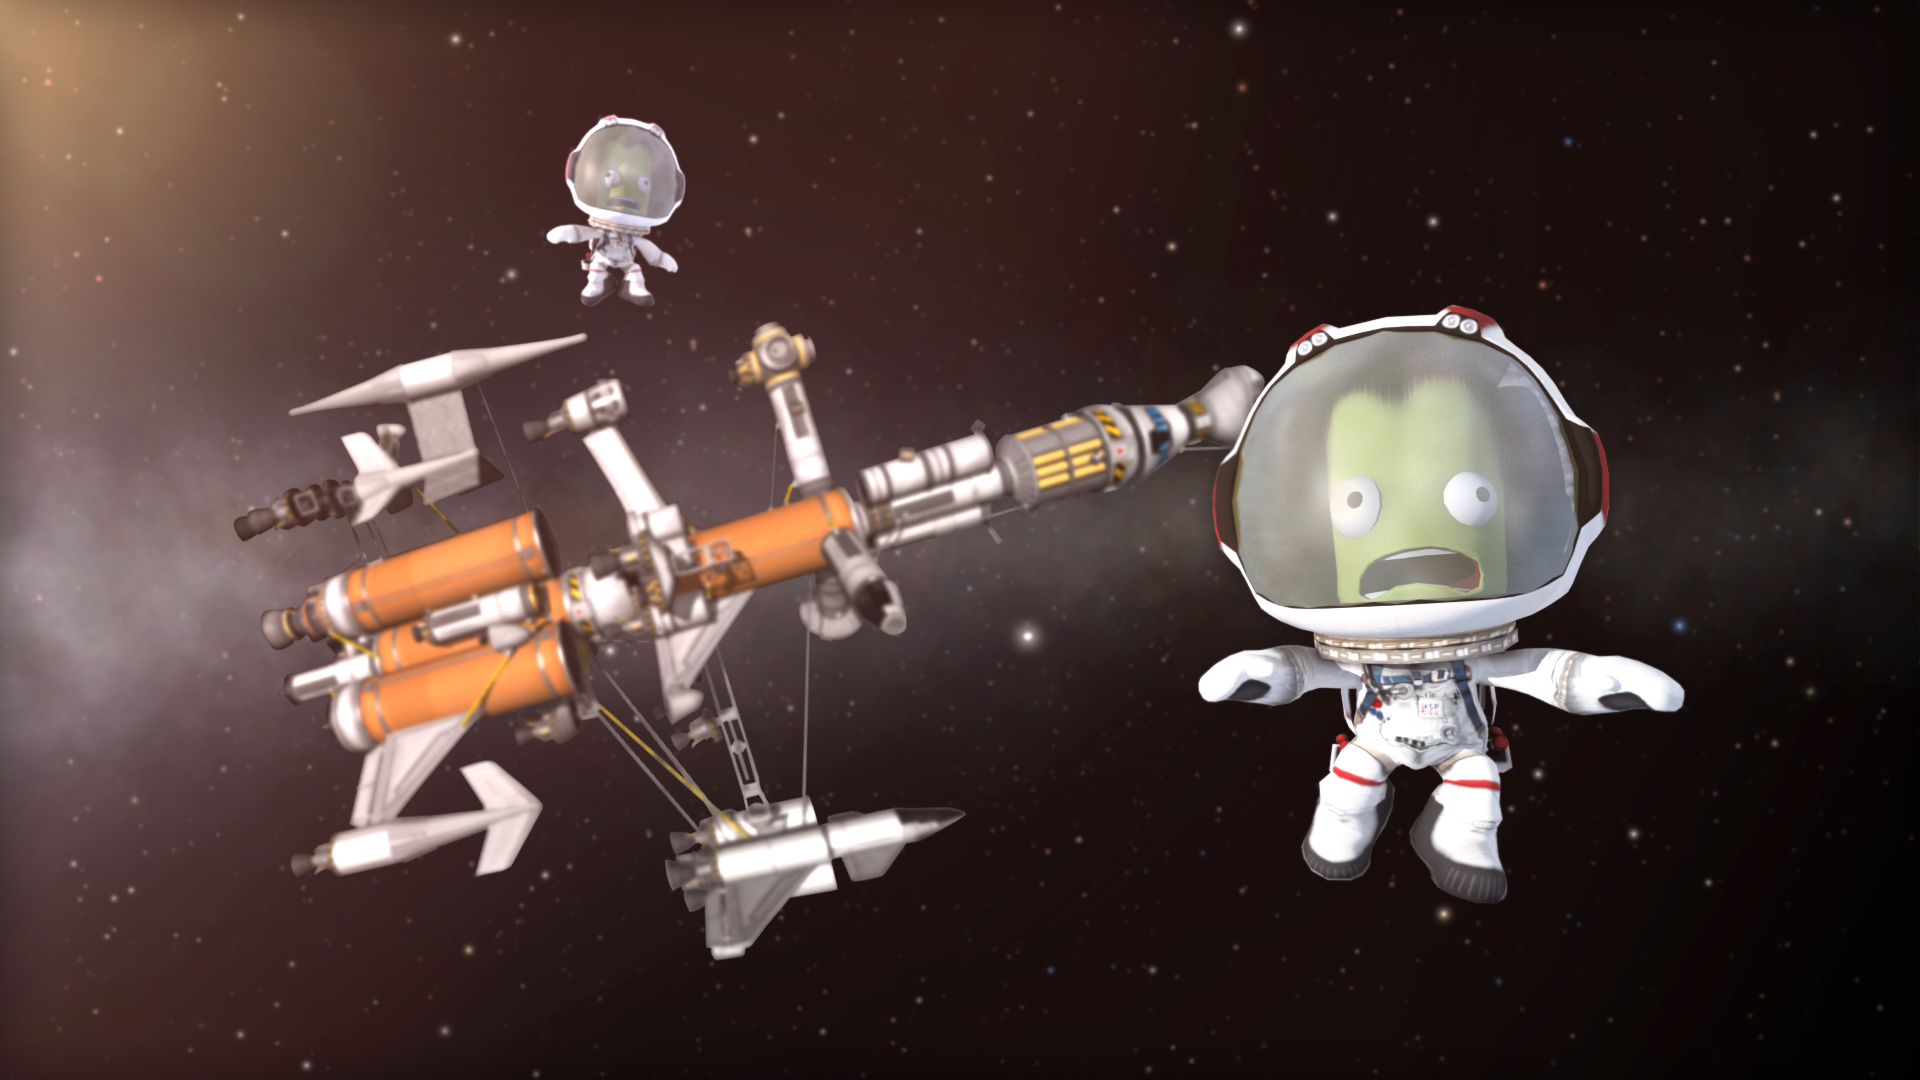 Kerbal Space Program Review Bombed Over Controversial Chinese Gender Translation